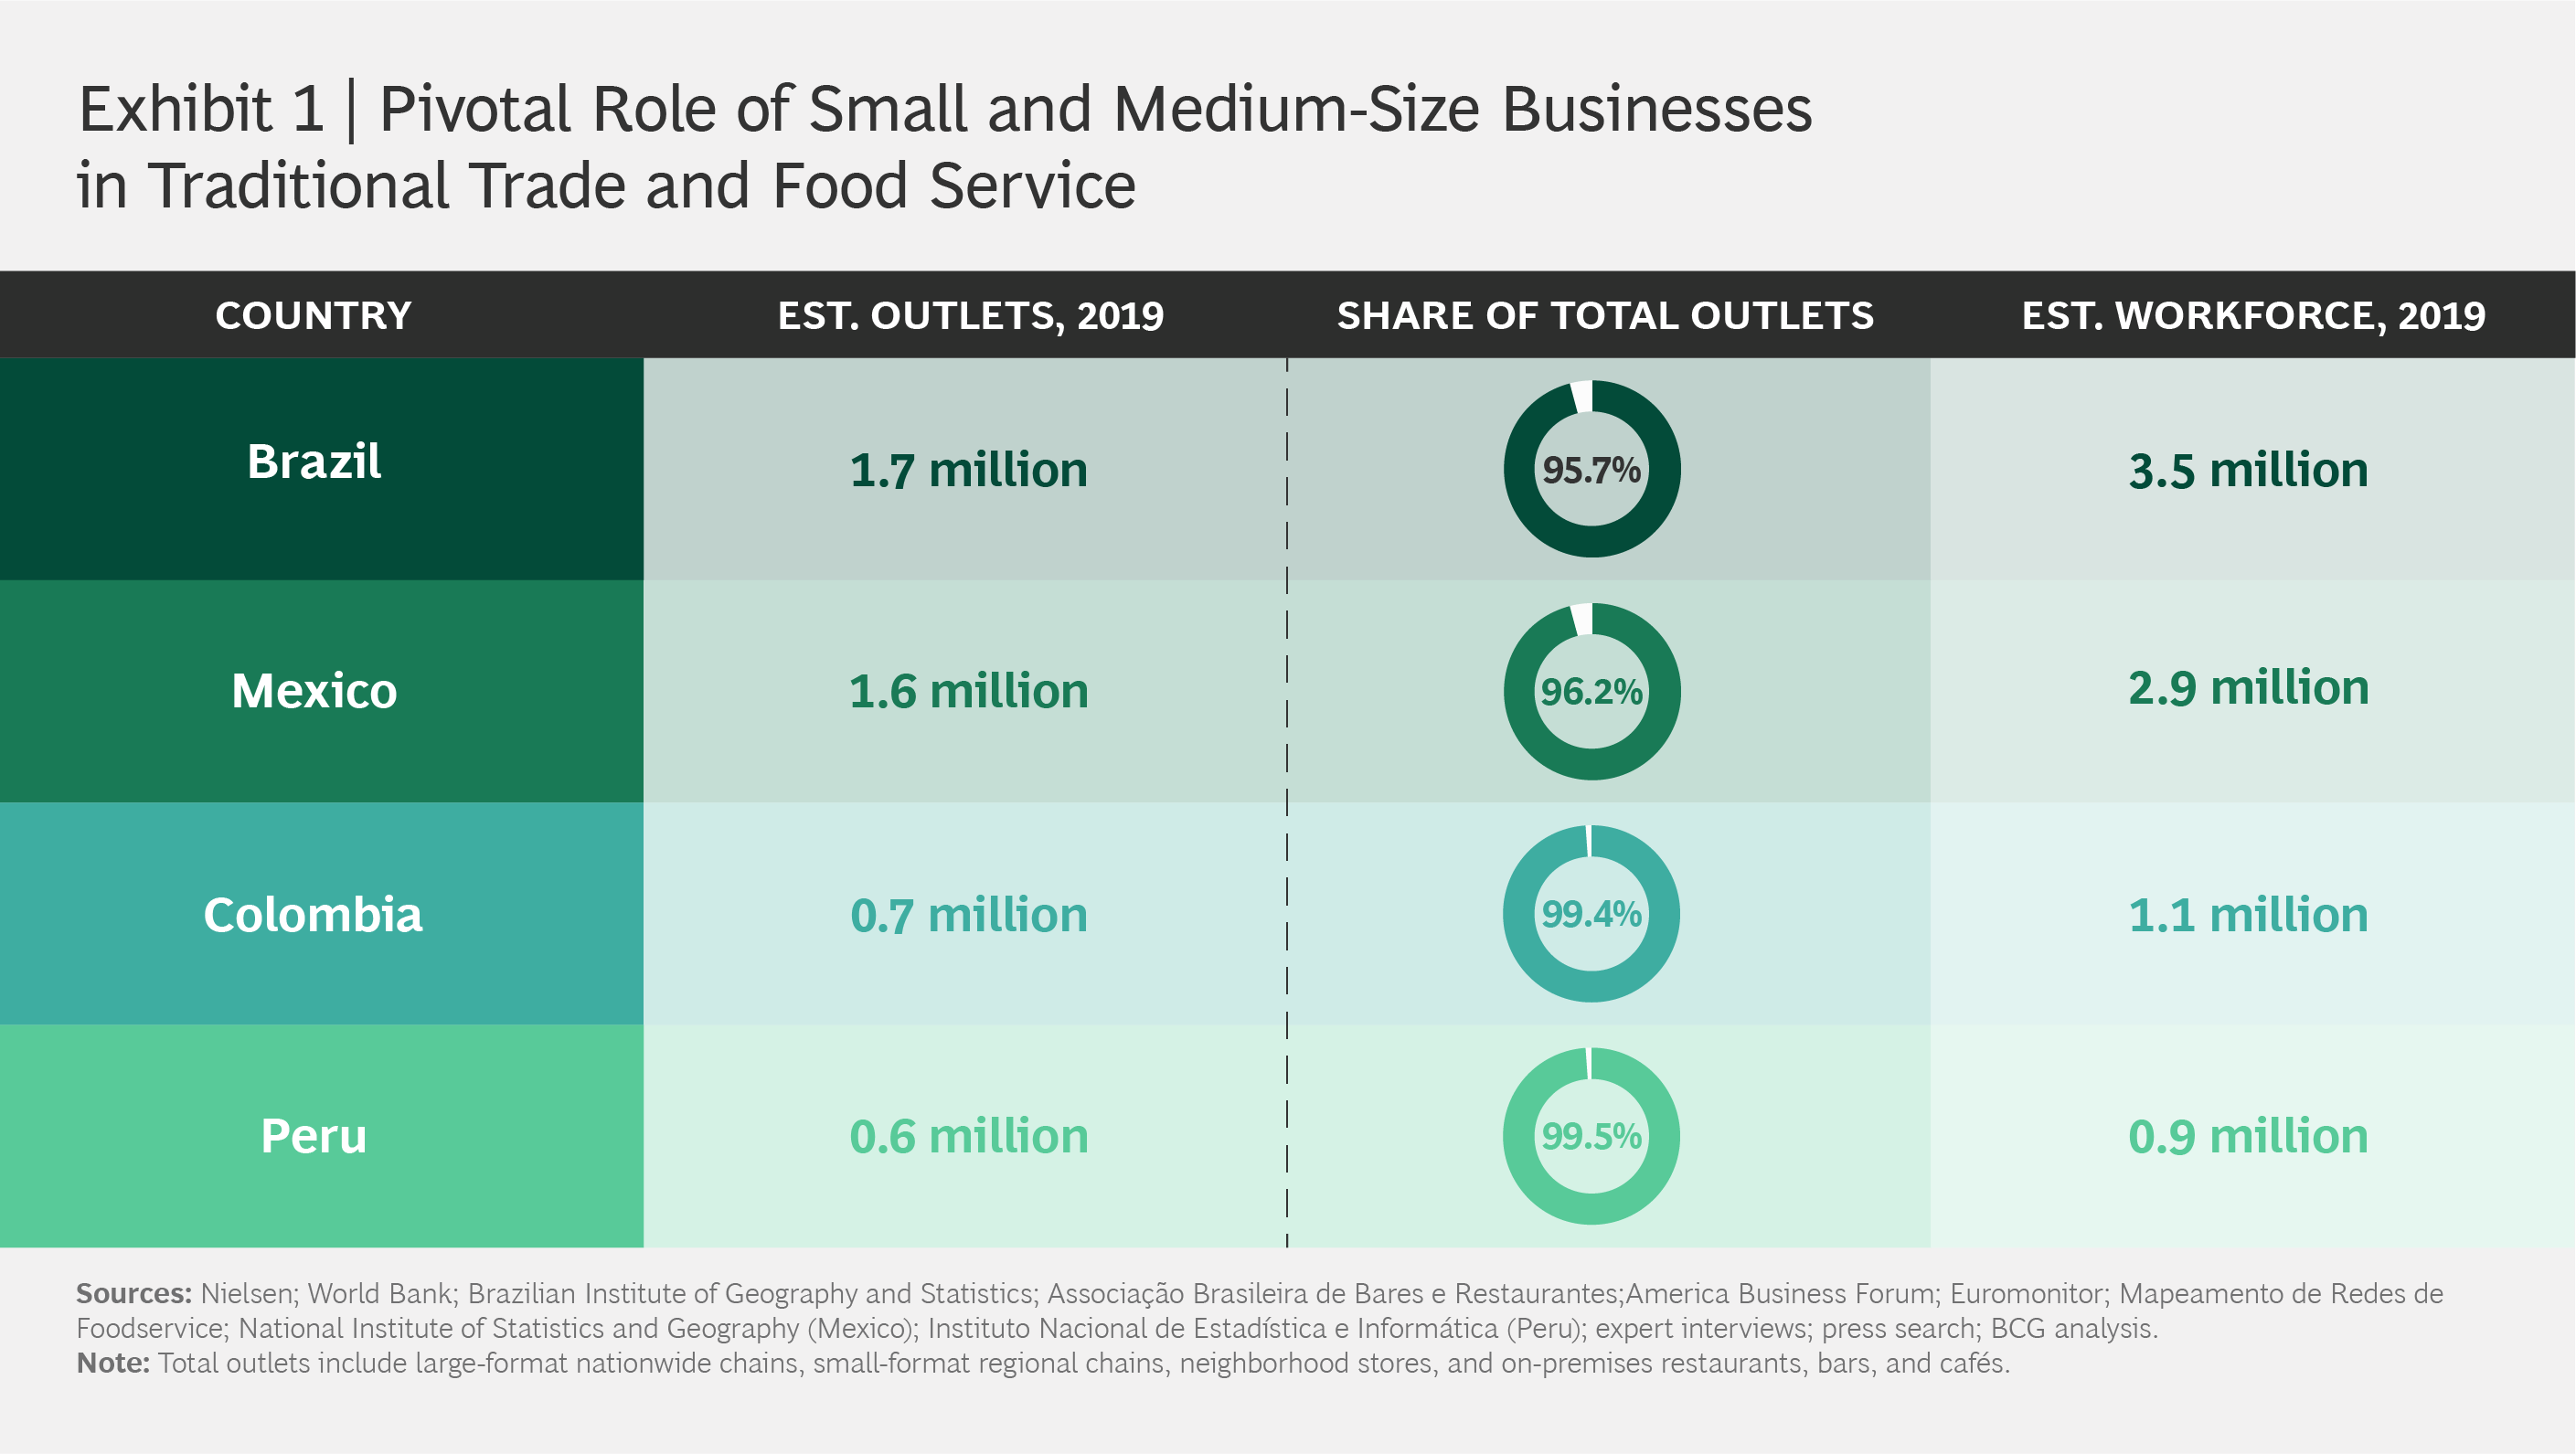 Pivotal Role of Small and Medium-Size Businesses in Traditional Trade and Food Service.